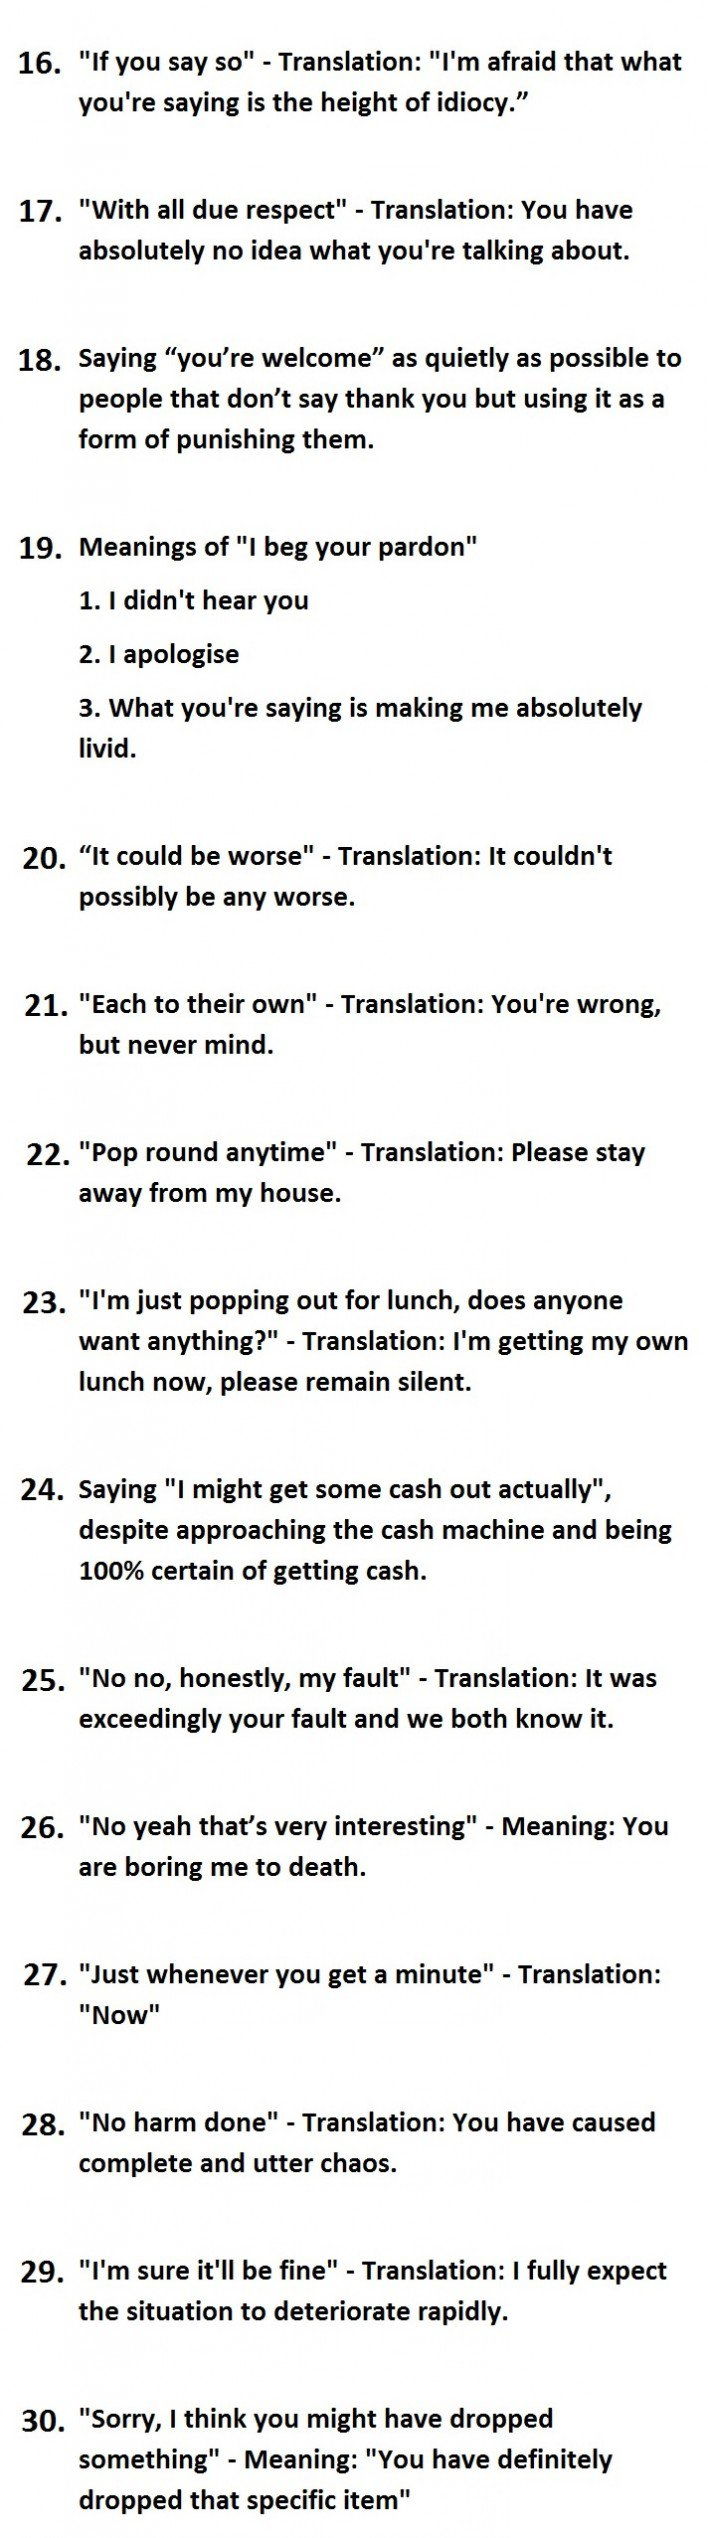 Things British People Say Vs. What They Actually Mean-2